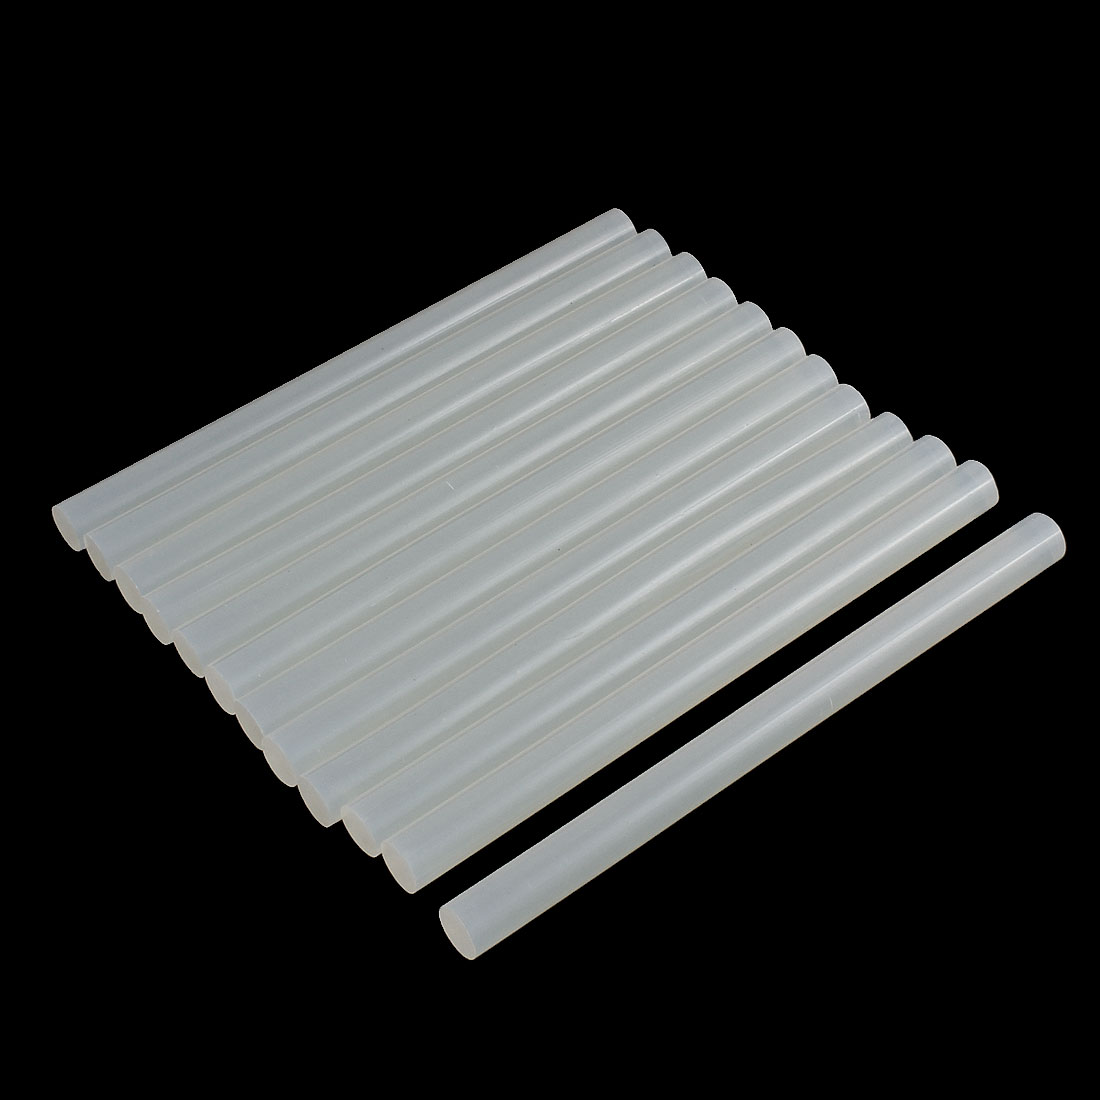 12 Pcs Translucence Crafting Model Hot Melt Glue Adhesive Sticks 150mm x 11mm